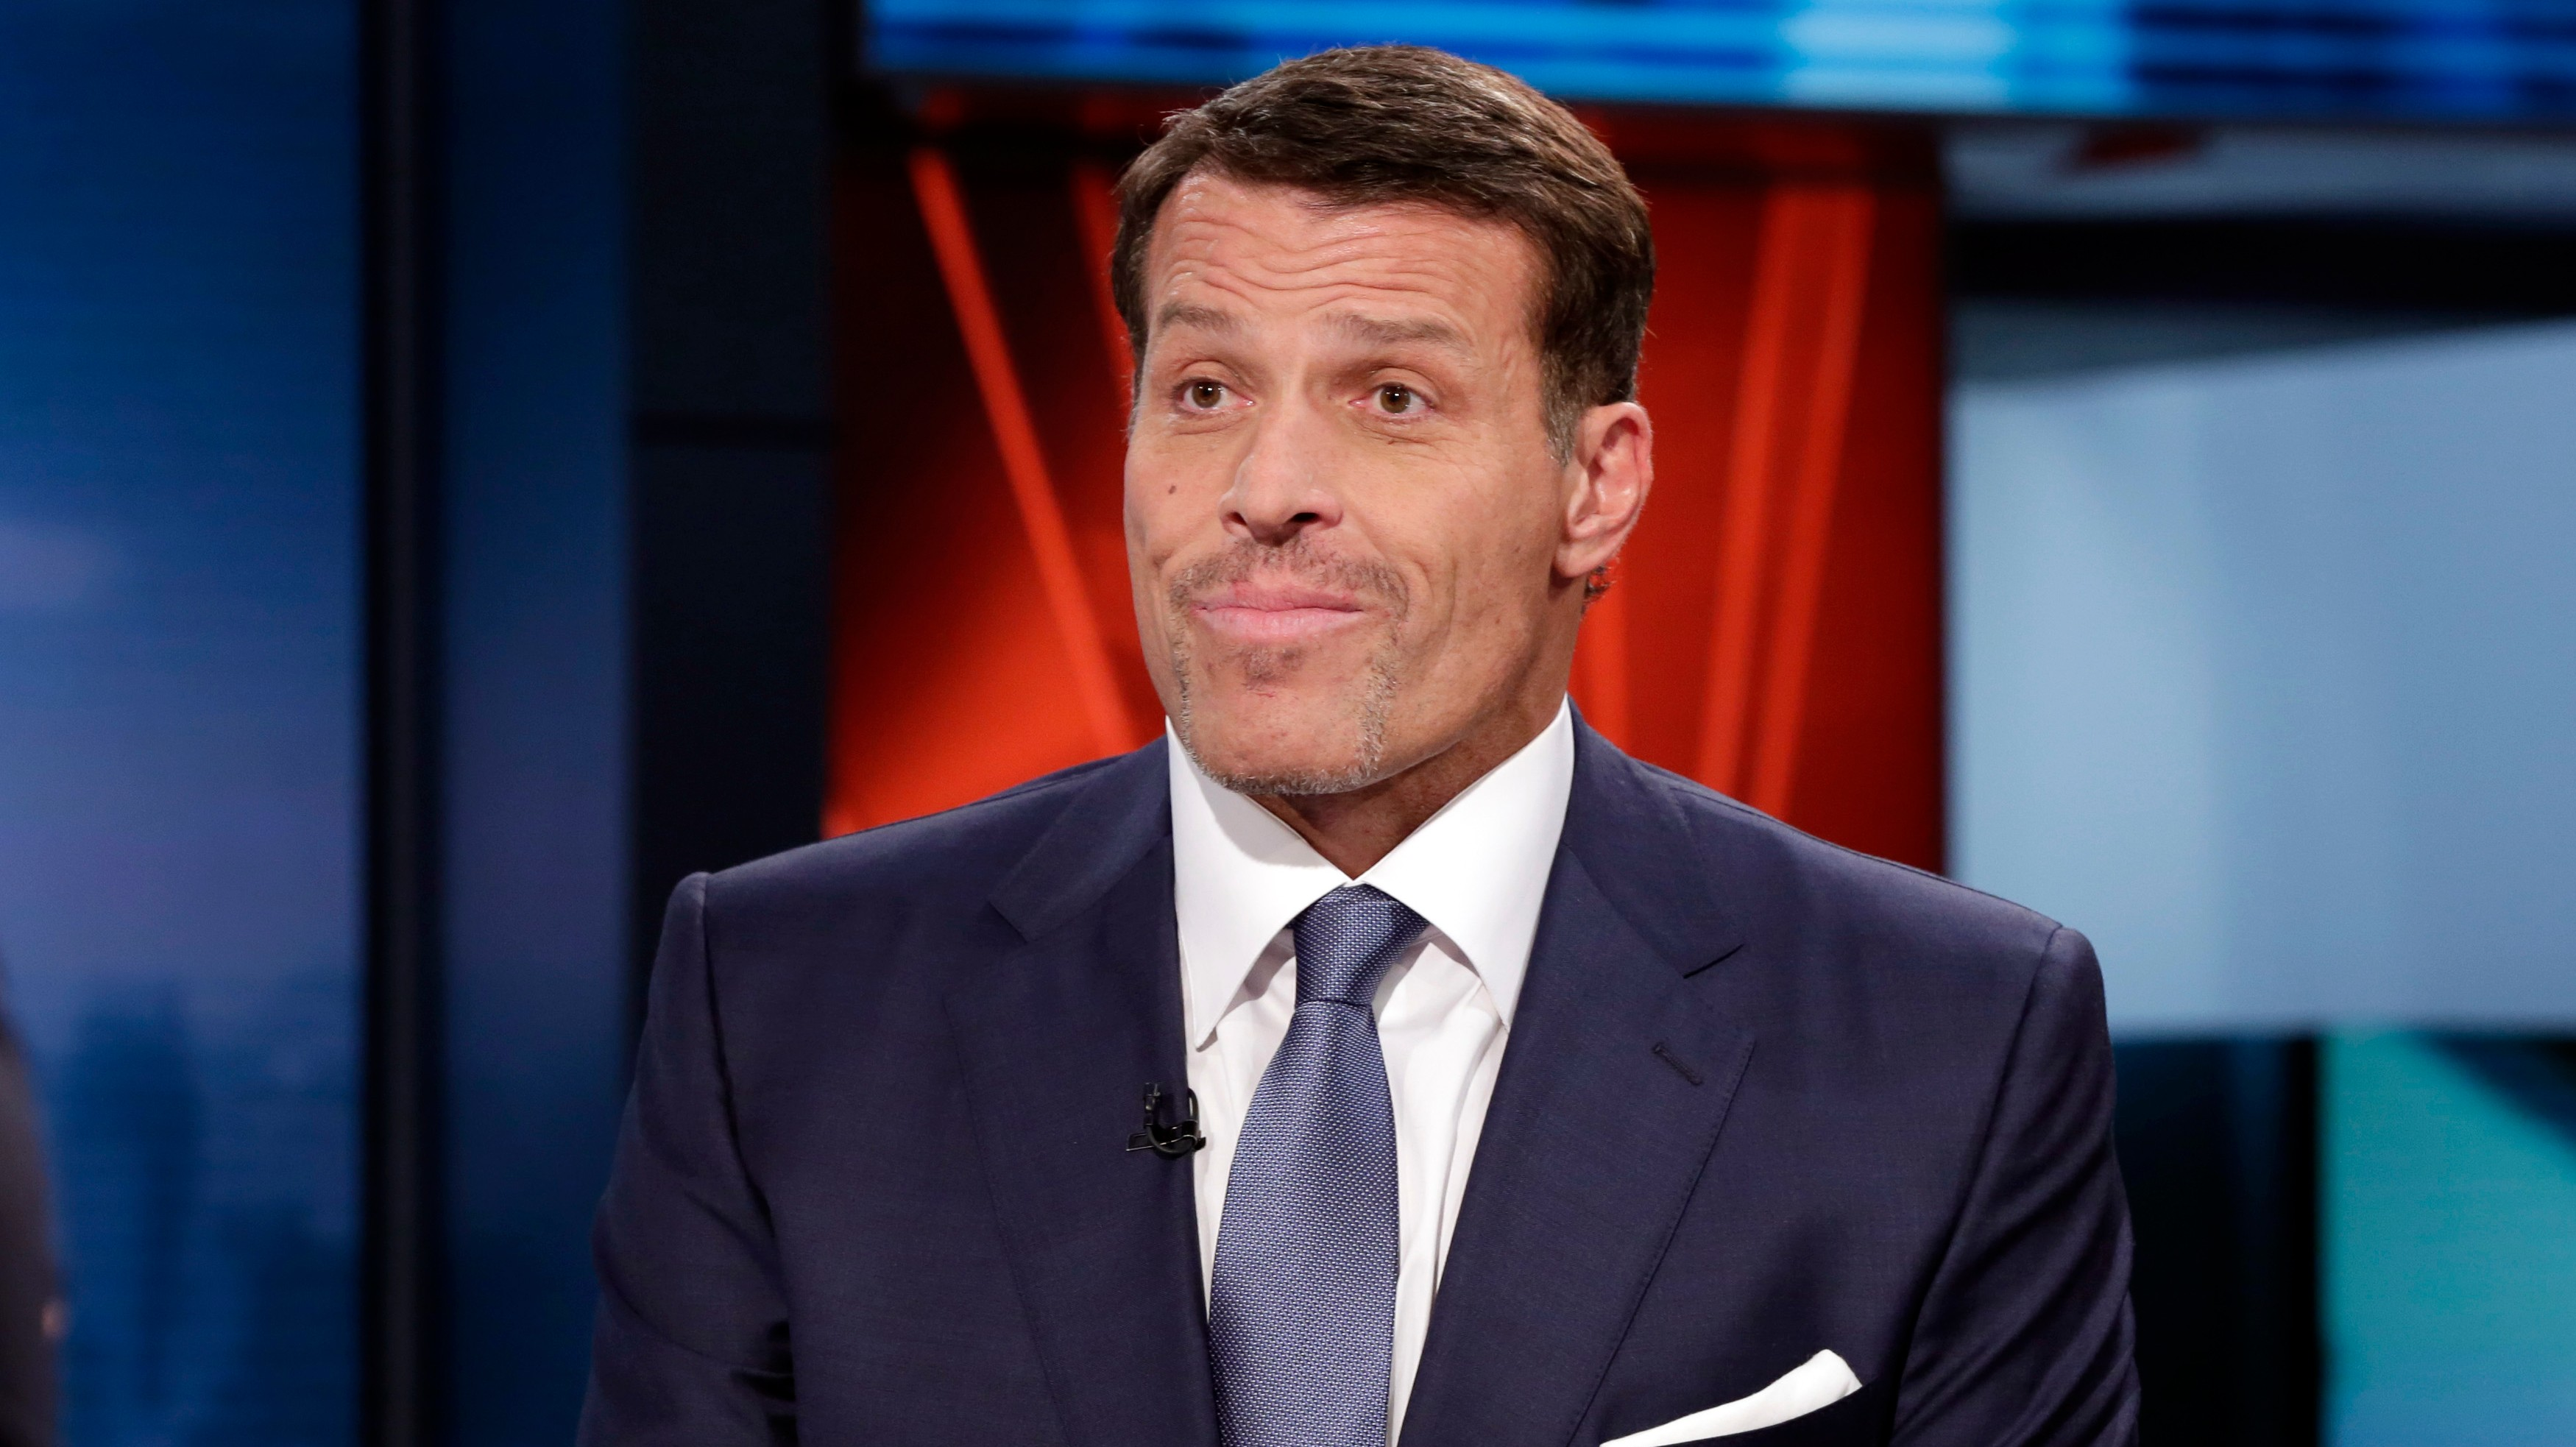 Life Coach Tony Robbins Faces Allegations of Sexual Harassment